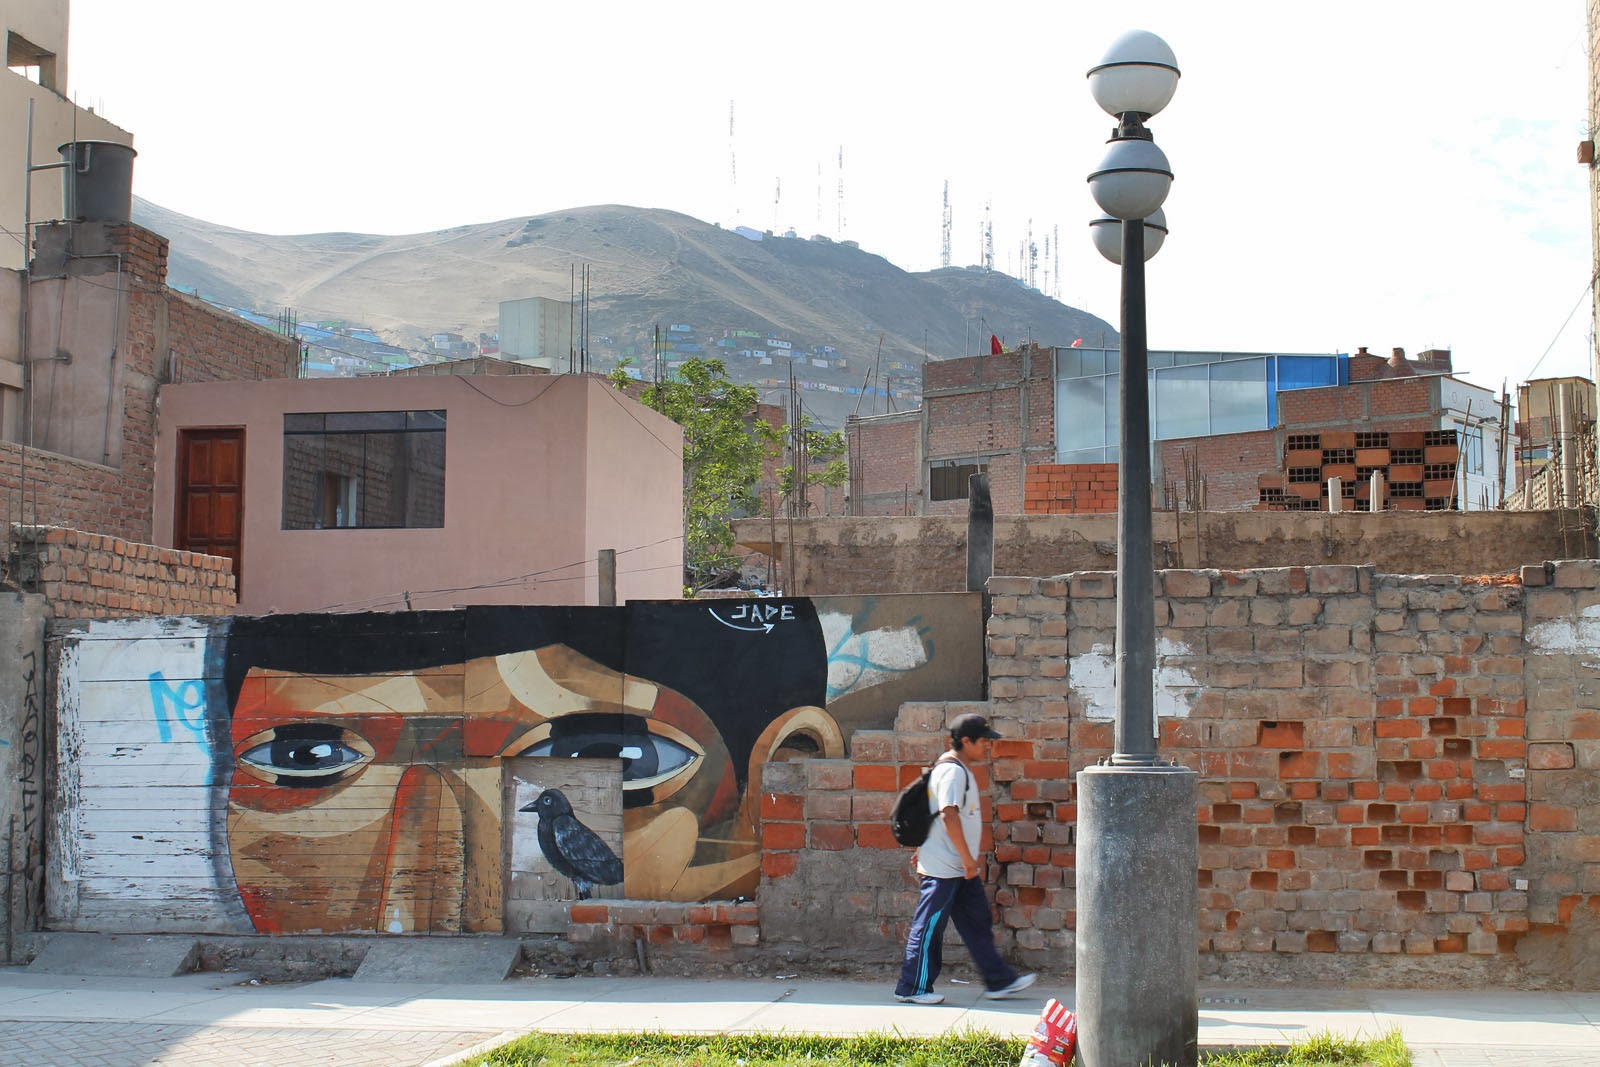 """""""The Host"""" a new street art piece by Peruvian artist JADE in the Chorillos district of Lima, Peru. 4"""